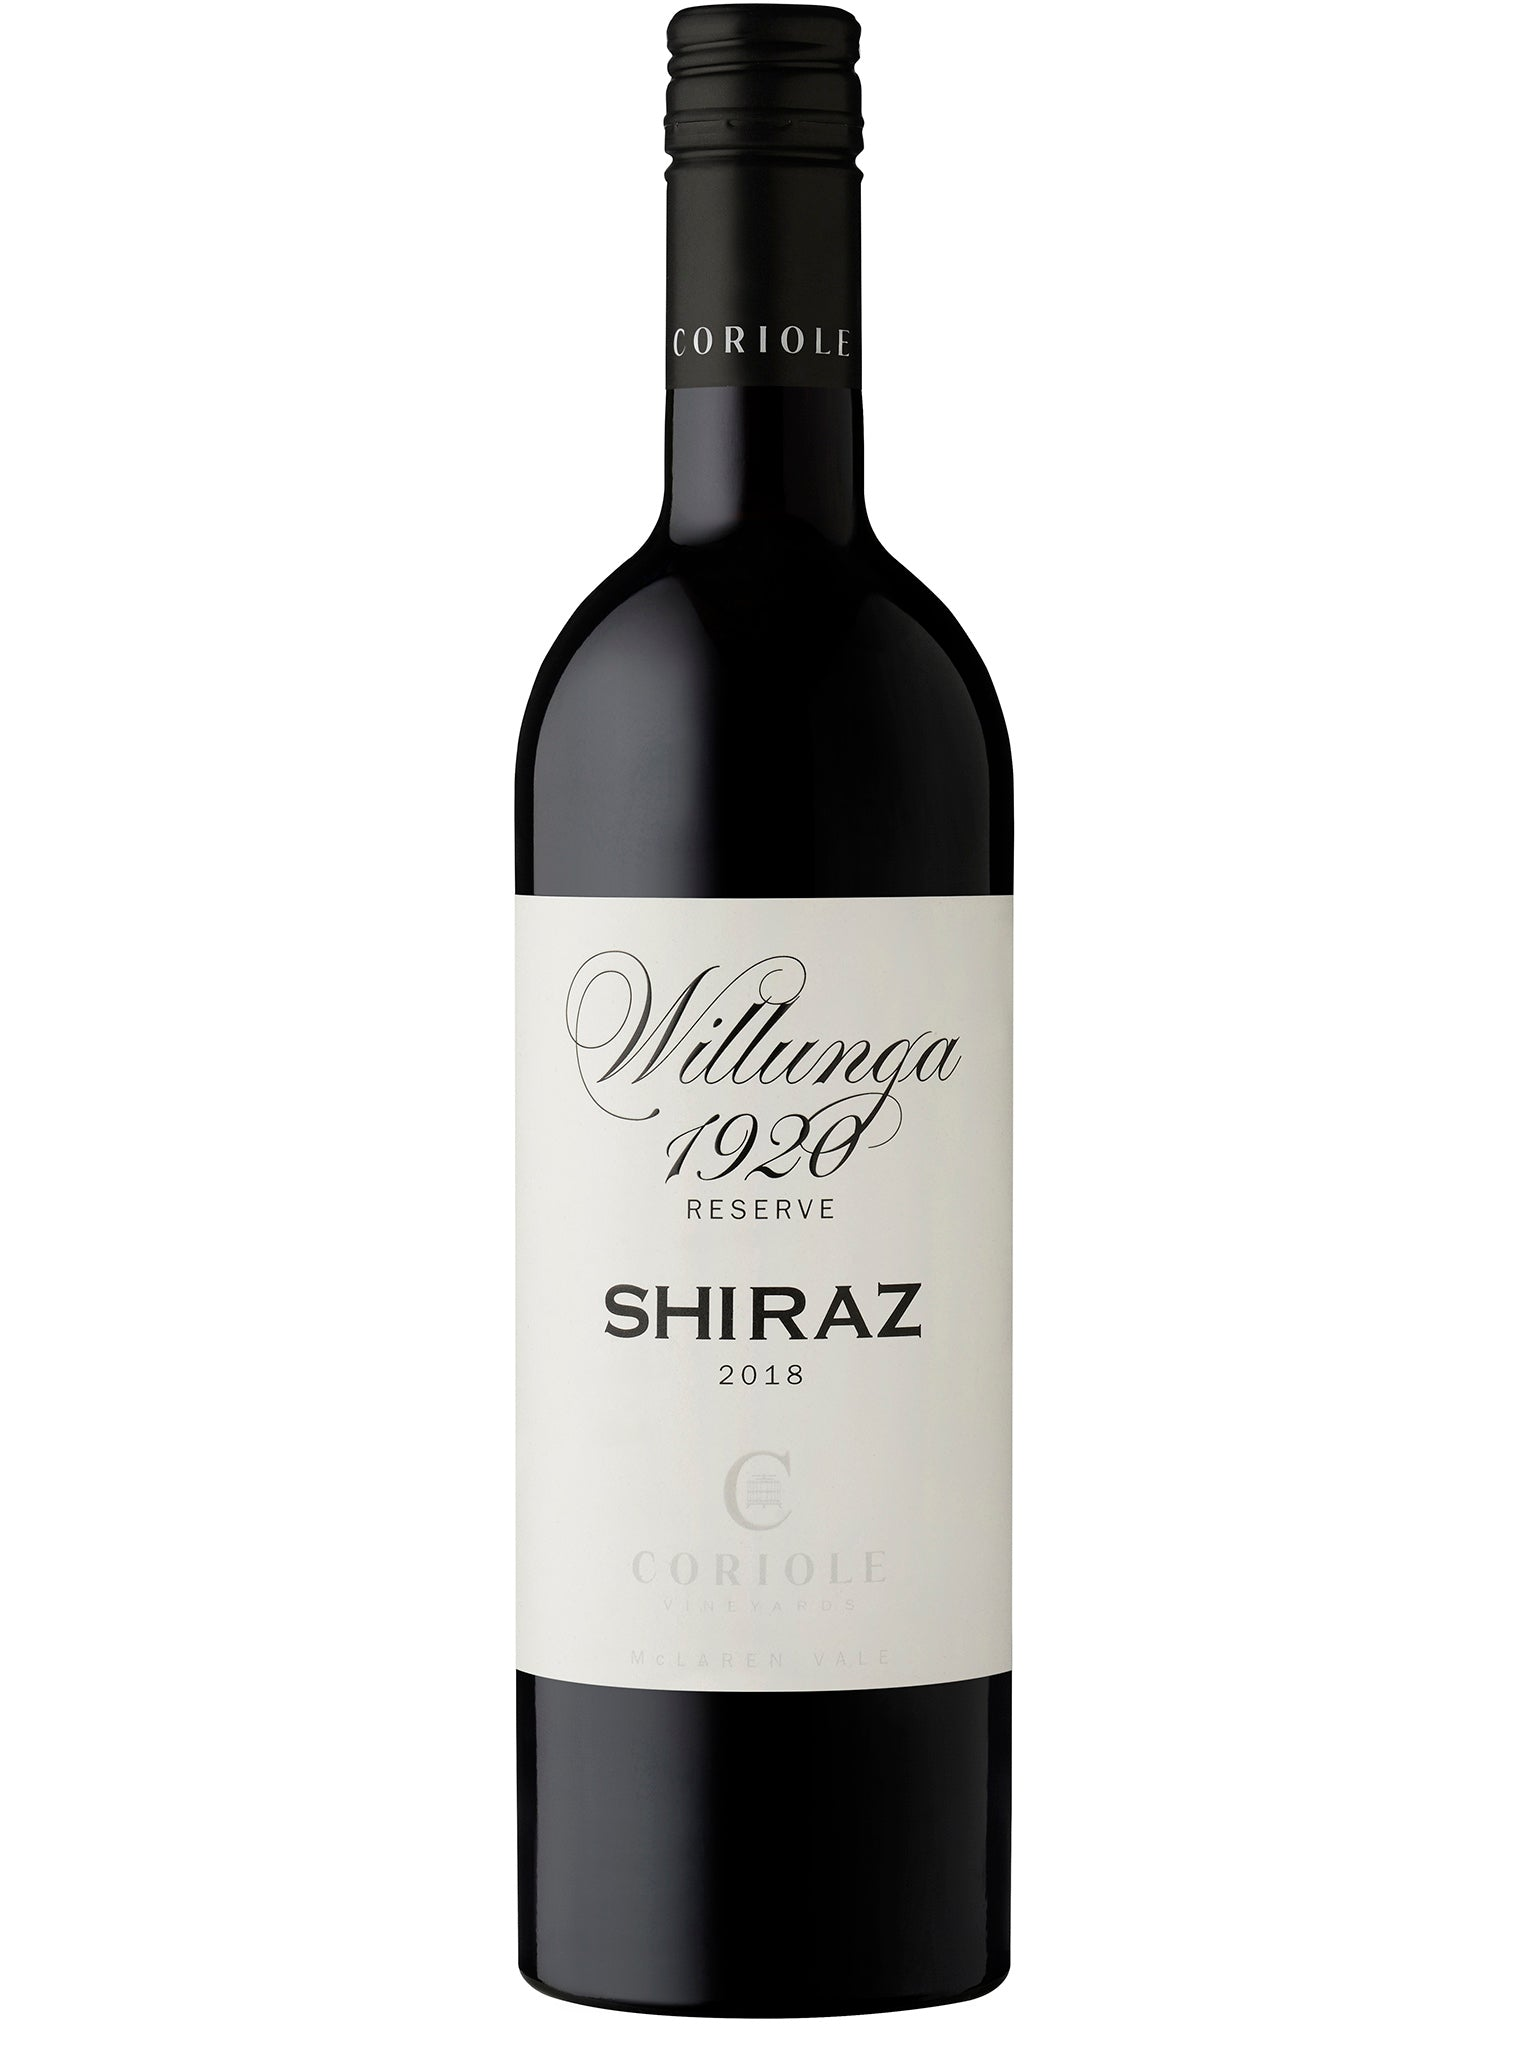 Coriole Willunga 1920 Shiraz 6pk 2018